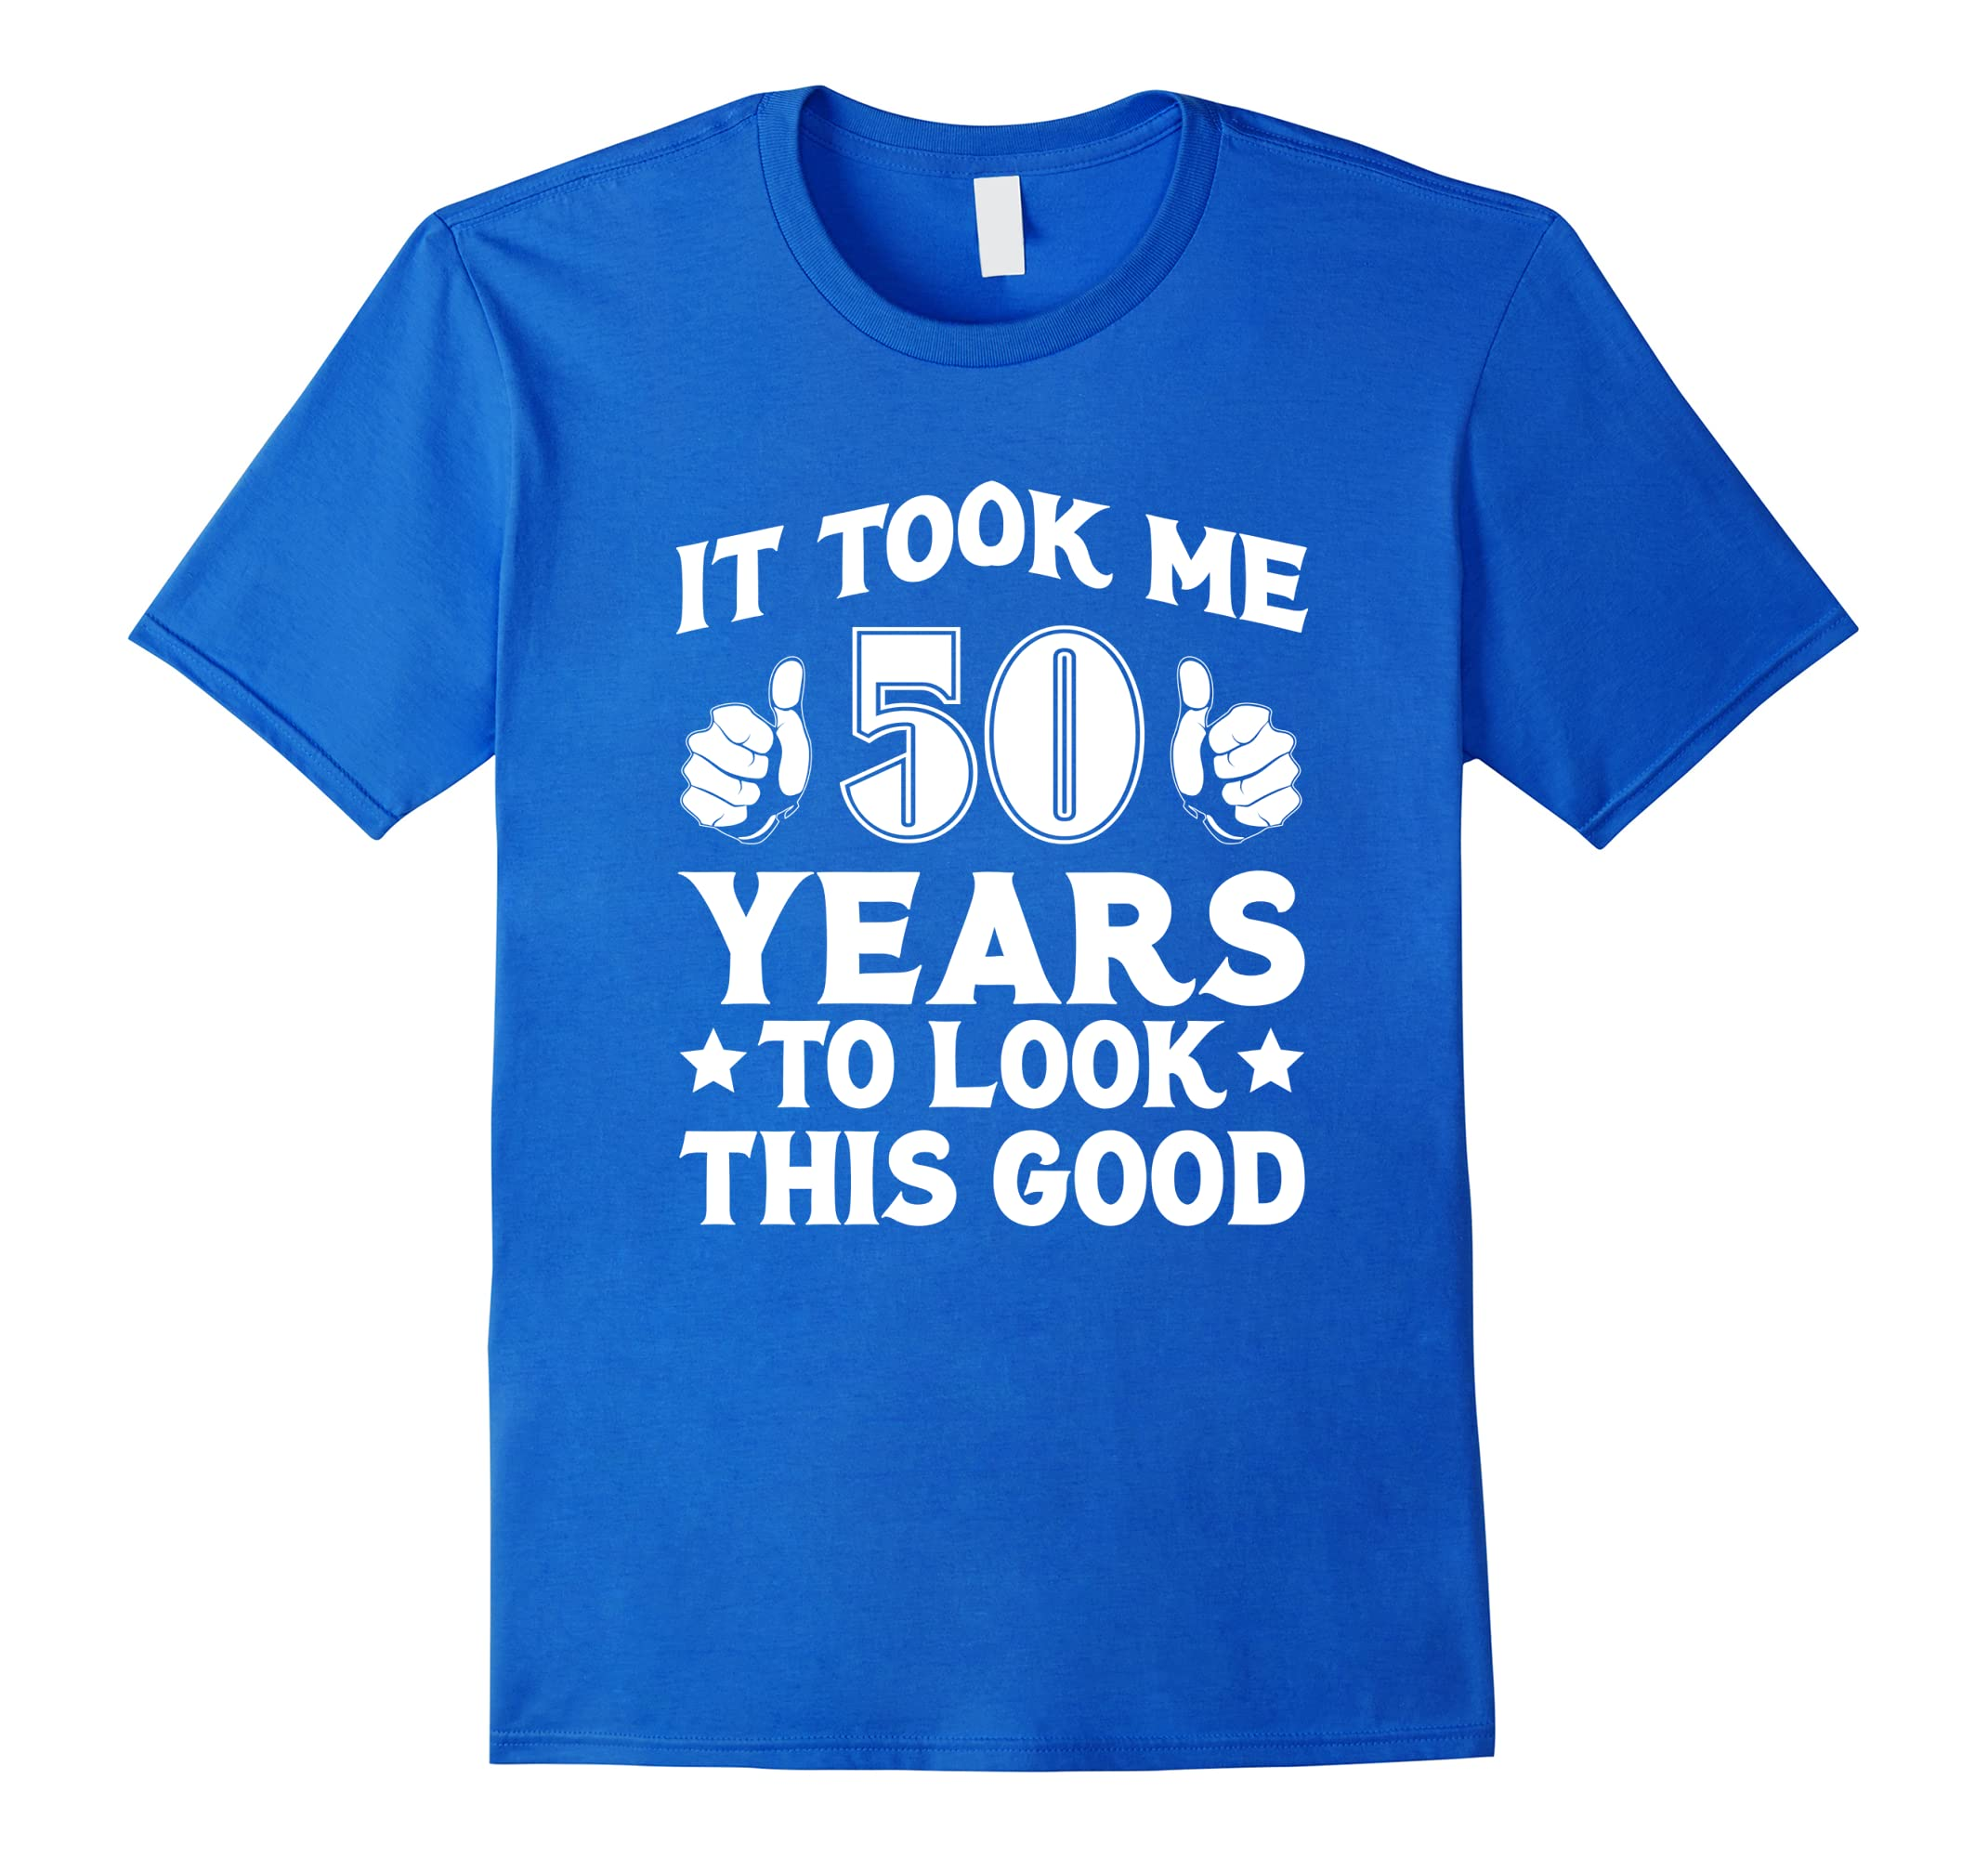 50th Birthday T-Shirt Took 50 Years To Look This Good-RT